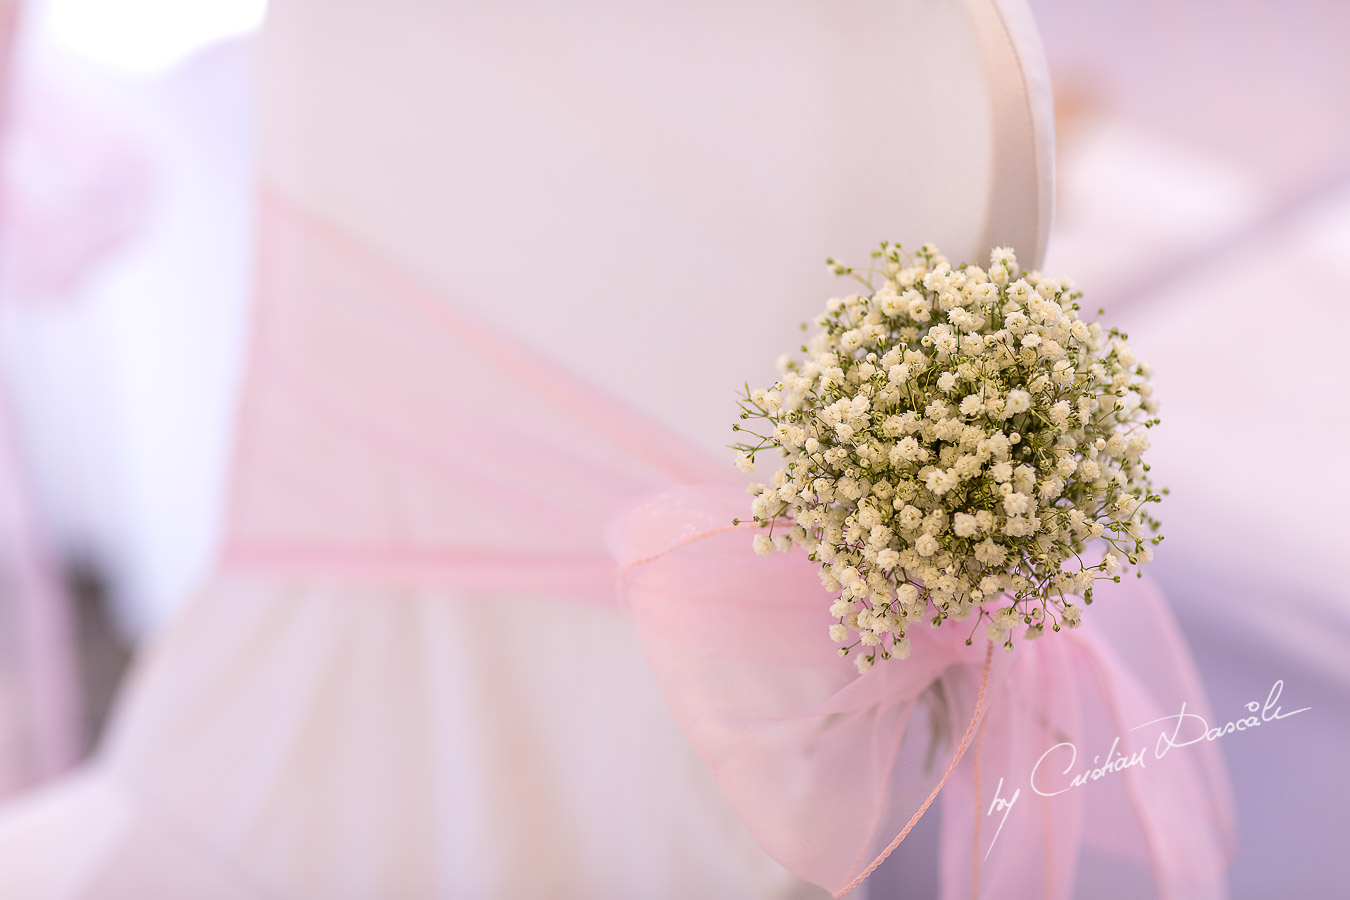 Beautiful details captured during a wedding at Aphrodite Hills Resort in Cyprus by Cyprus Photographer Cristian Dascalu.